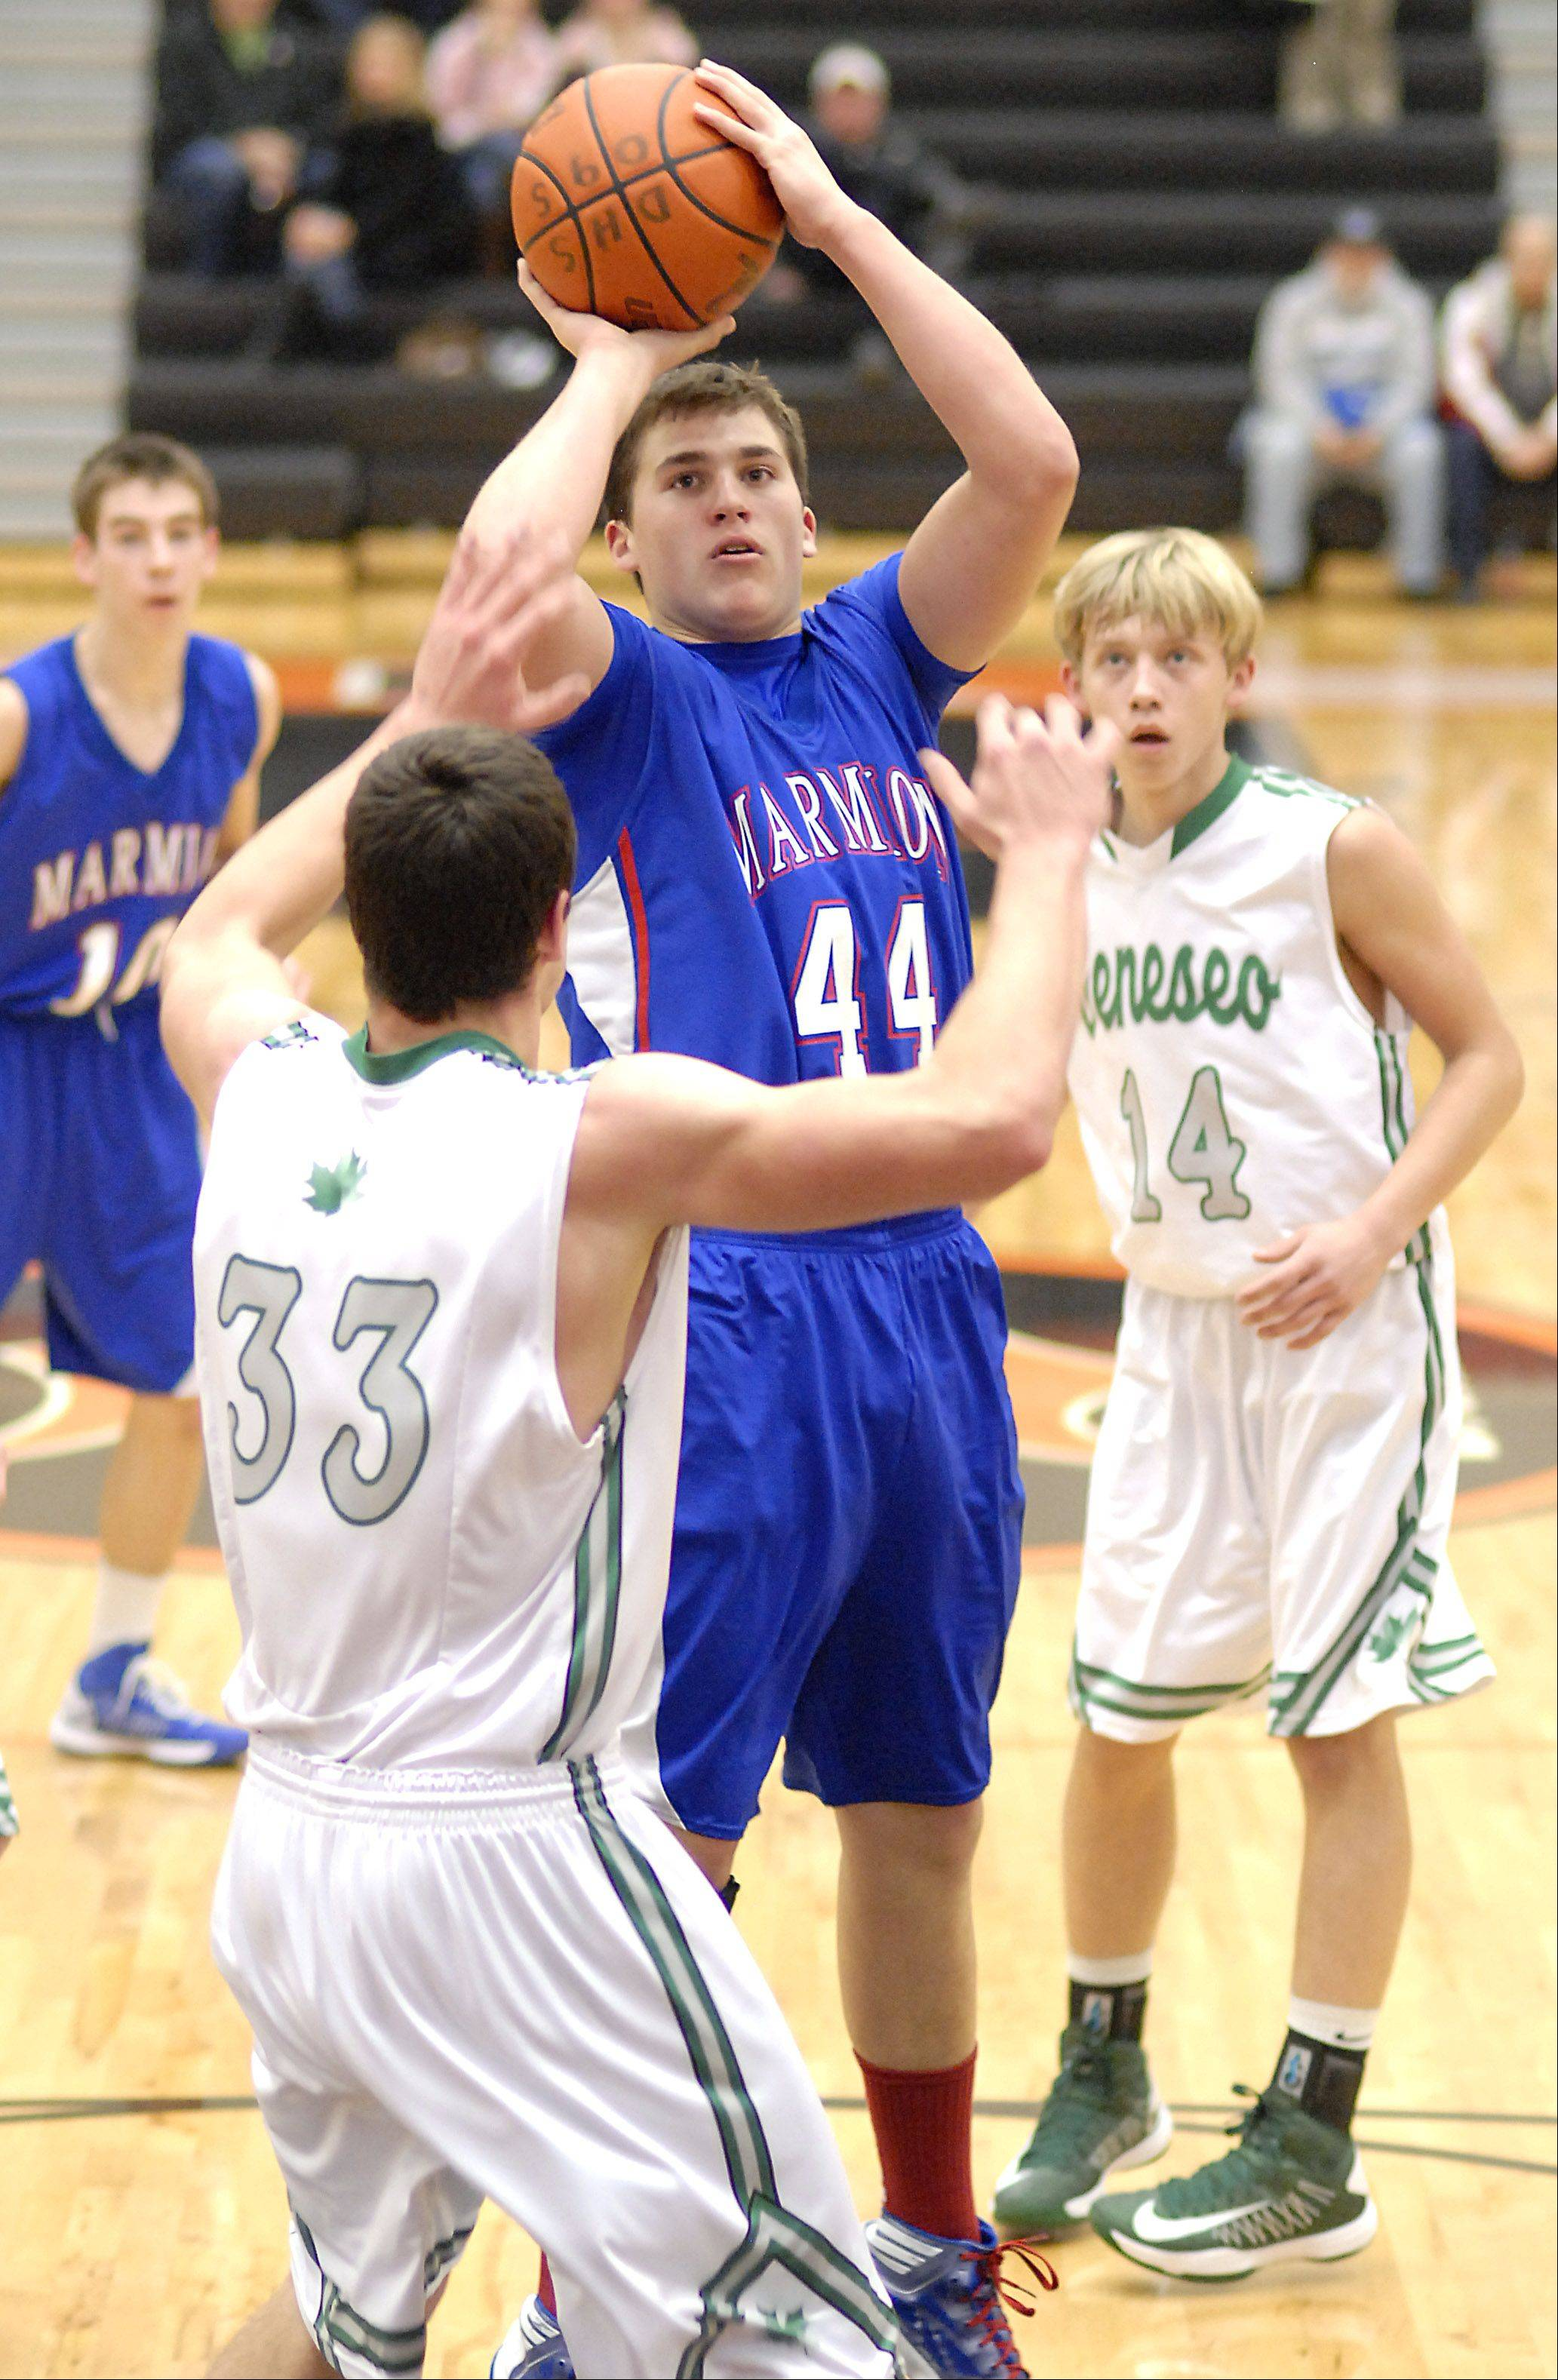 Marmion's Danny Bicknell shoots over Geneseo's Grant Burress in the second quarter of the DeKalb tournament on Saturday, December 22.